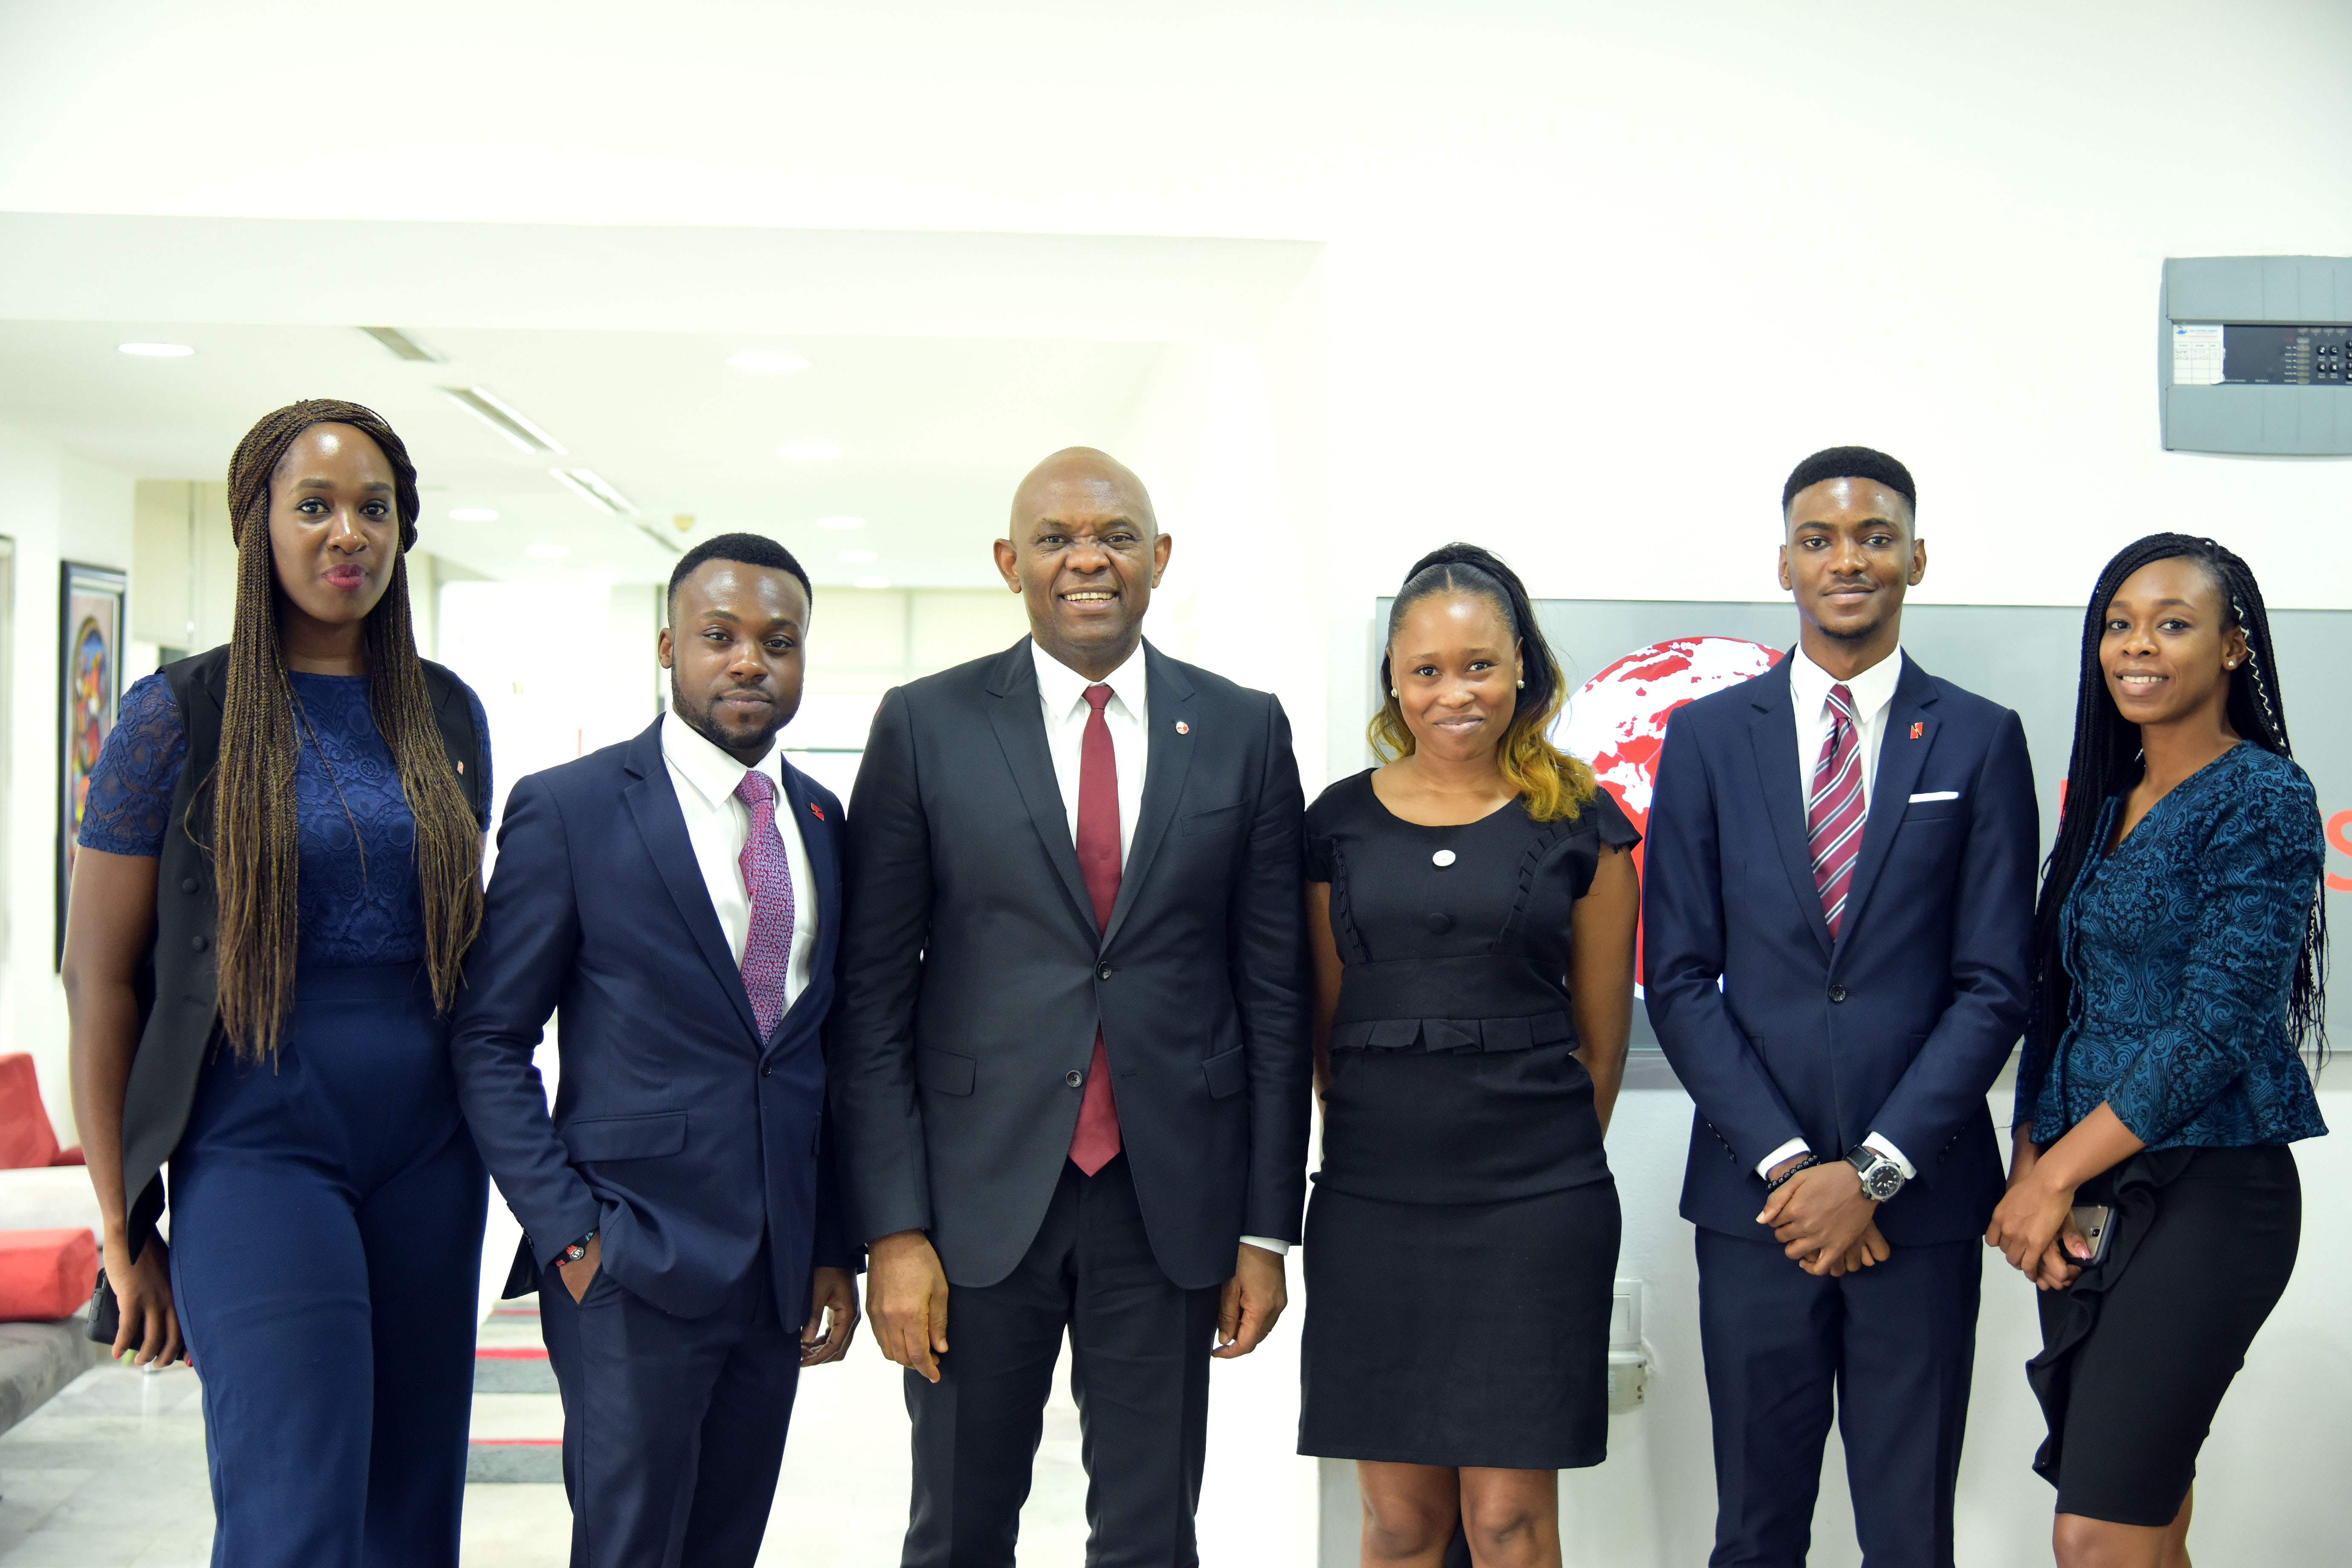 Elumelu Tasks Corporate Leaders On Mentoring Young Professionals